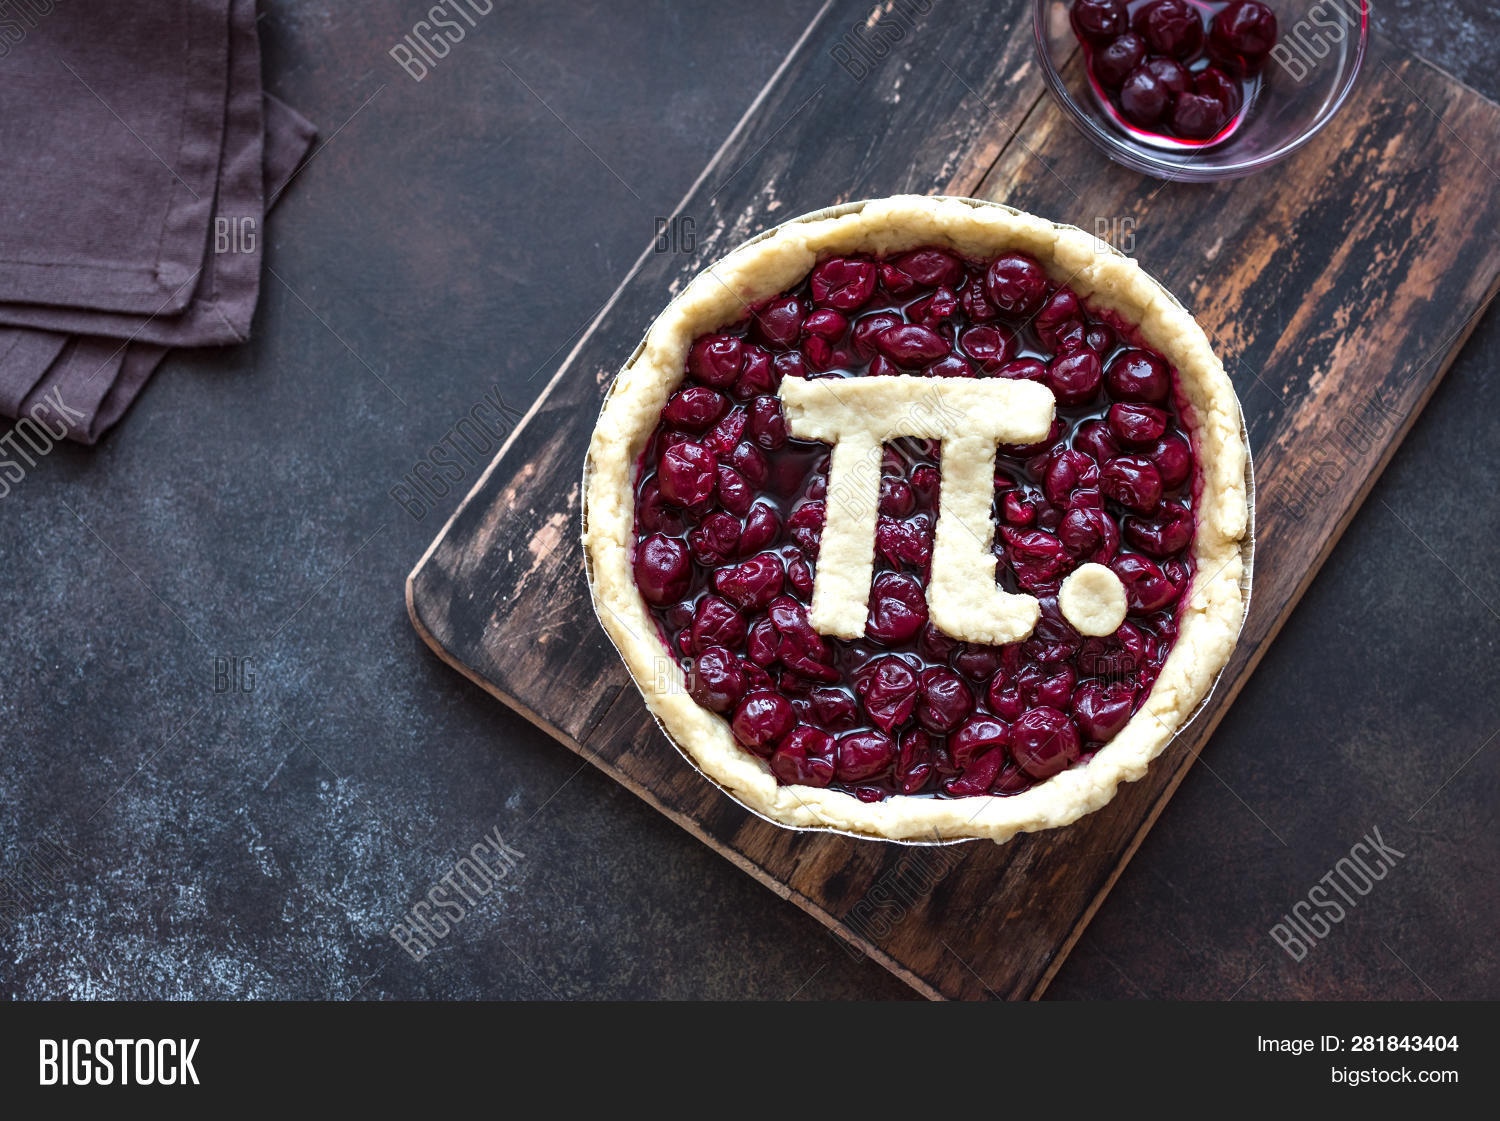 14,14th,314,american,background,berry,cake,celebration,cherry,closeup,concept,constant,copy,crust,day,dessert,education,filling,food,fruit,geometry,happy,holiday,homemade,ingedient,letter,making,march,math,mathematical,mathematics,number,overhead,pastry,pi,pie,raw,rustic,school,shaped,space,styling,sweet,symbol,top,view,wooden